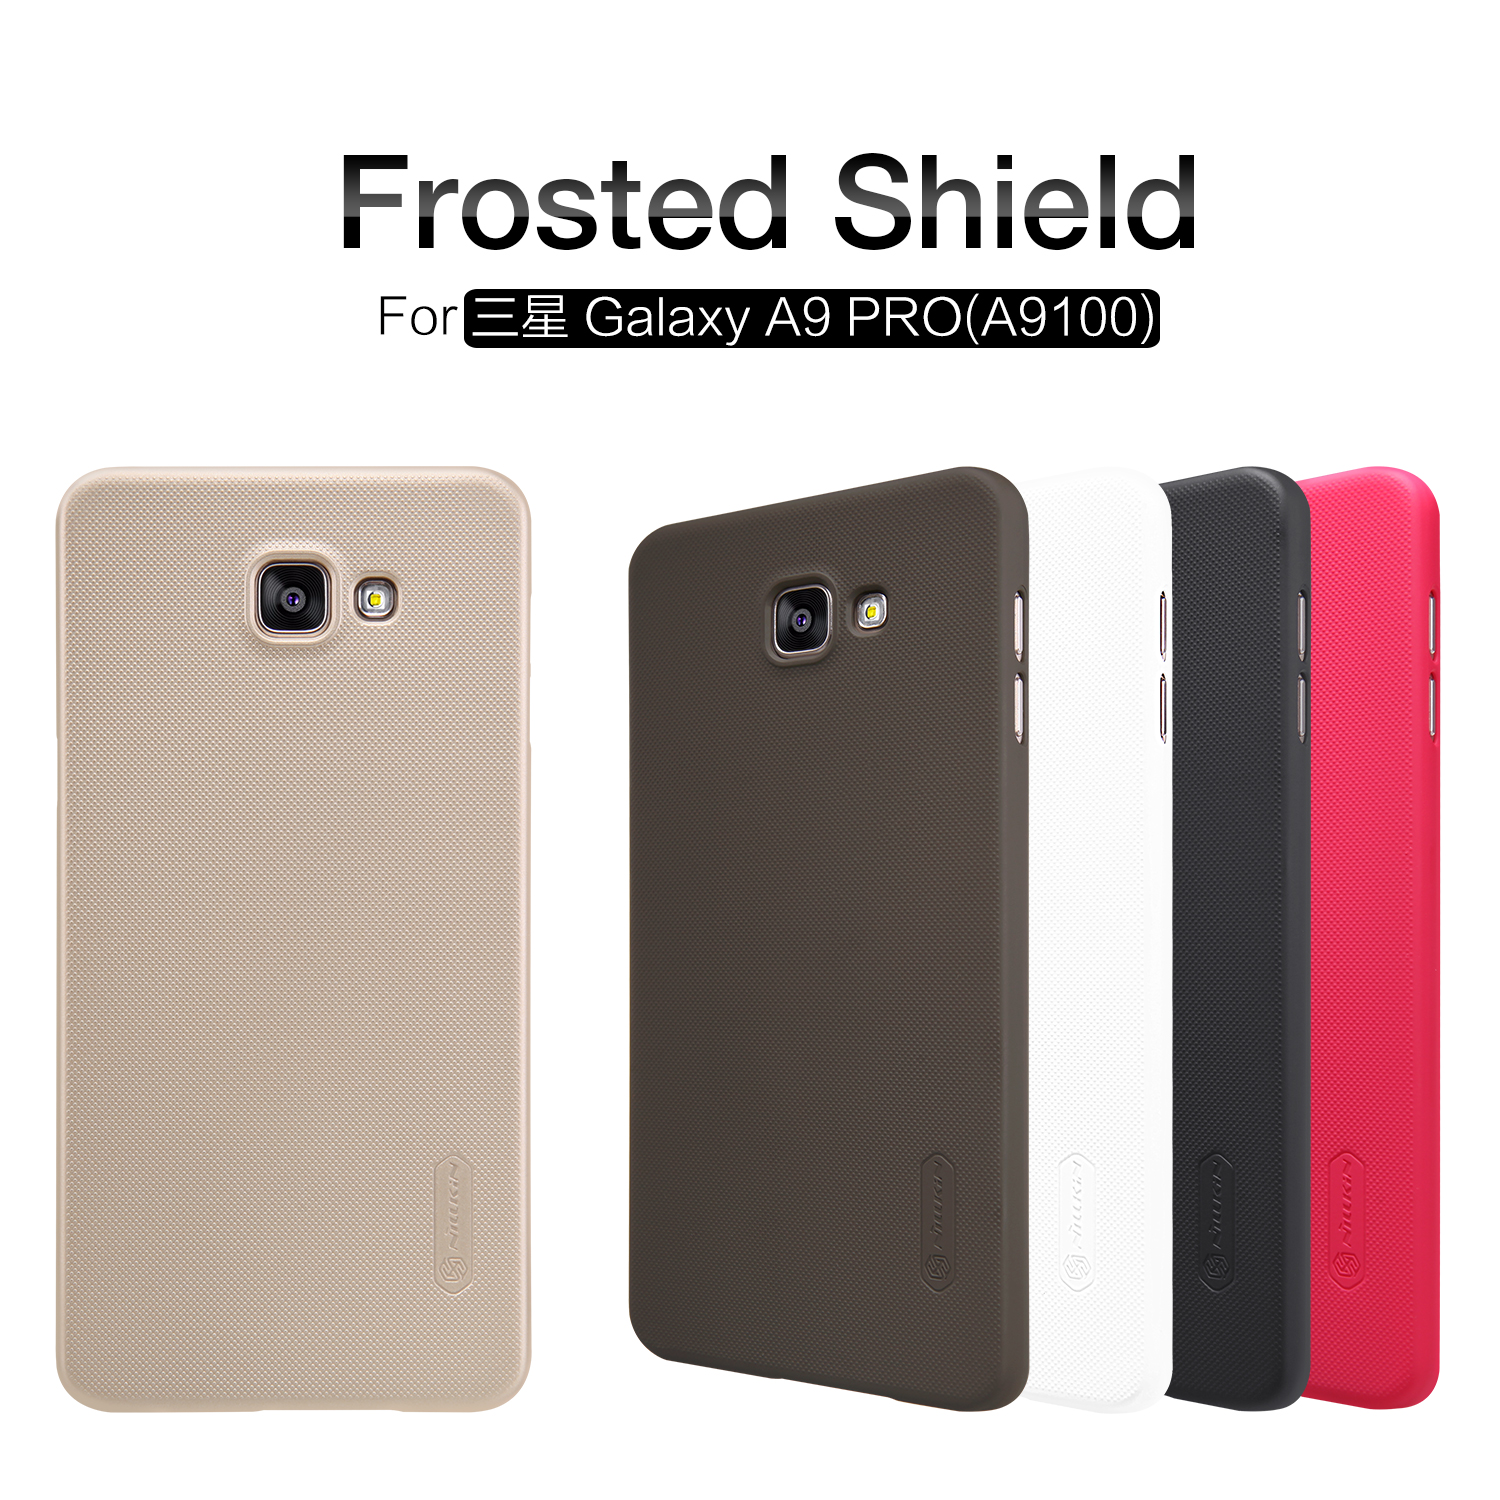 Nillkin Frosted Shield Cell Phone Case For Samsung Galaxy A9 Pro 2016 A9100 6 0inch Hard Back Cover Case free Screen Protector